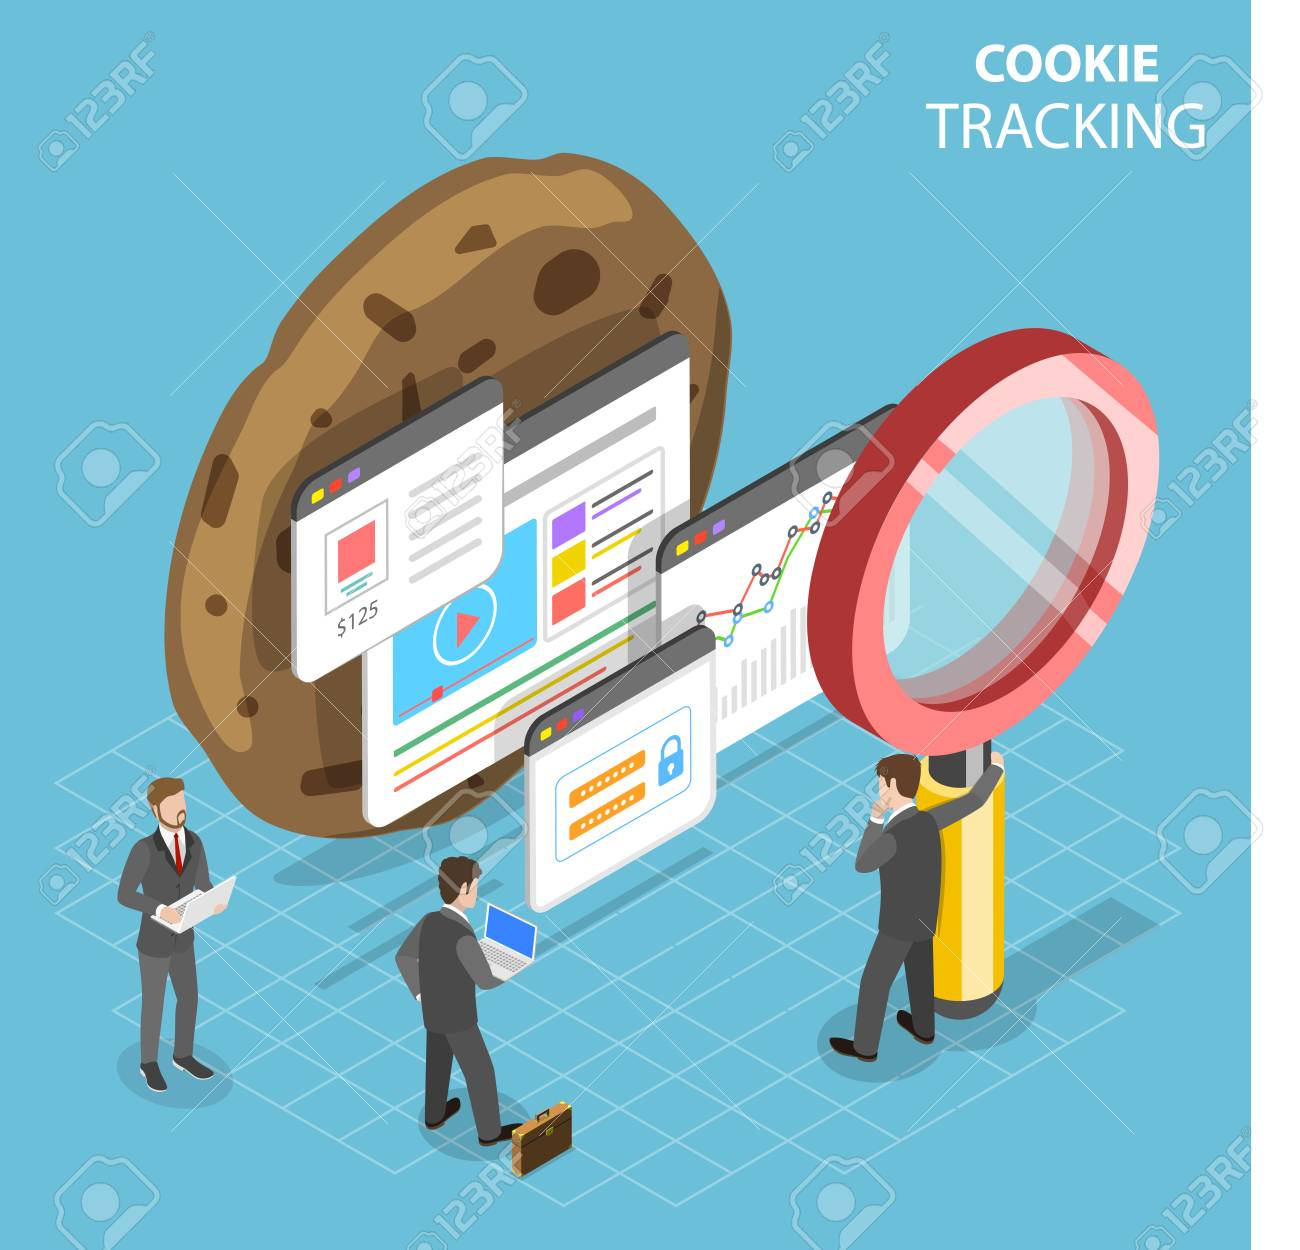 Web cookie tracking flat isometric vector concept. - 104993079